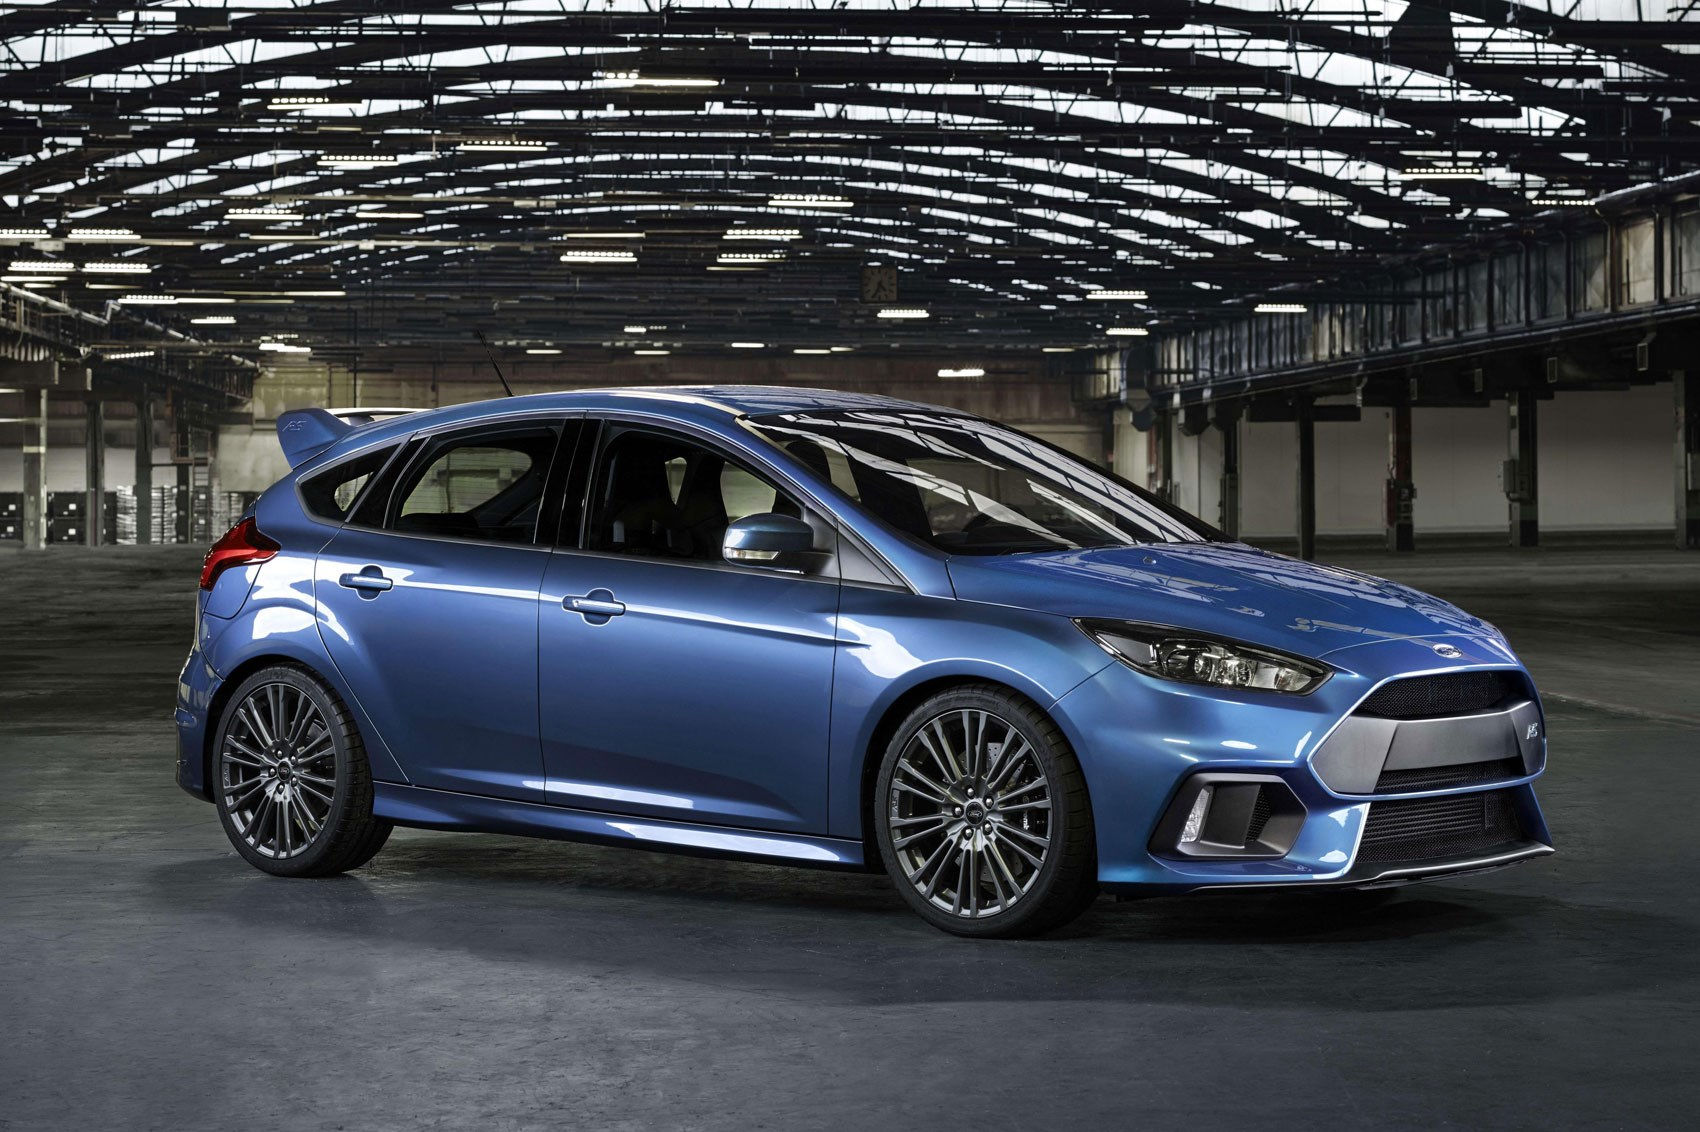 ford focus rs 2016 prices and stats revealed 165mph 28 940 by car magazine. Black Bedroom Furniture Sets. Home Design Ideas